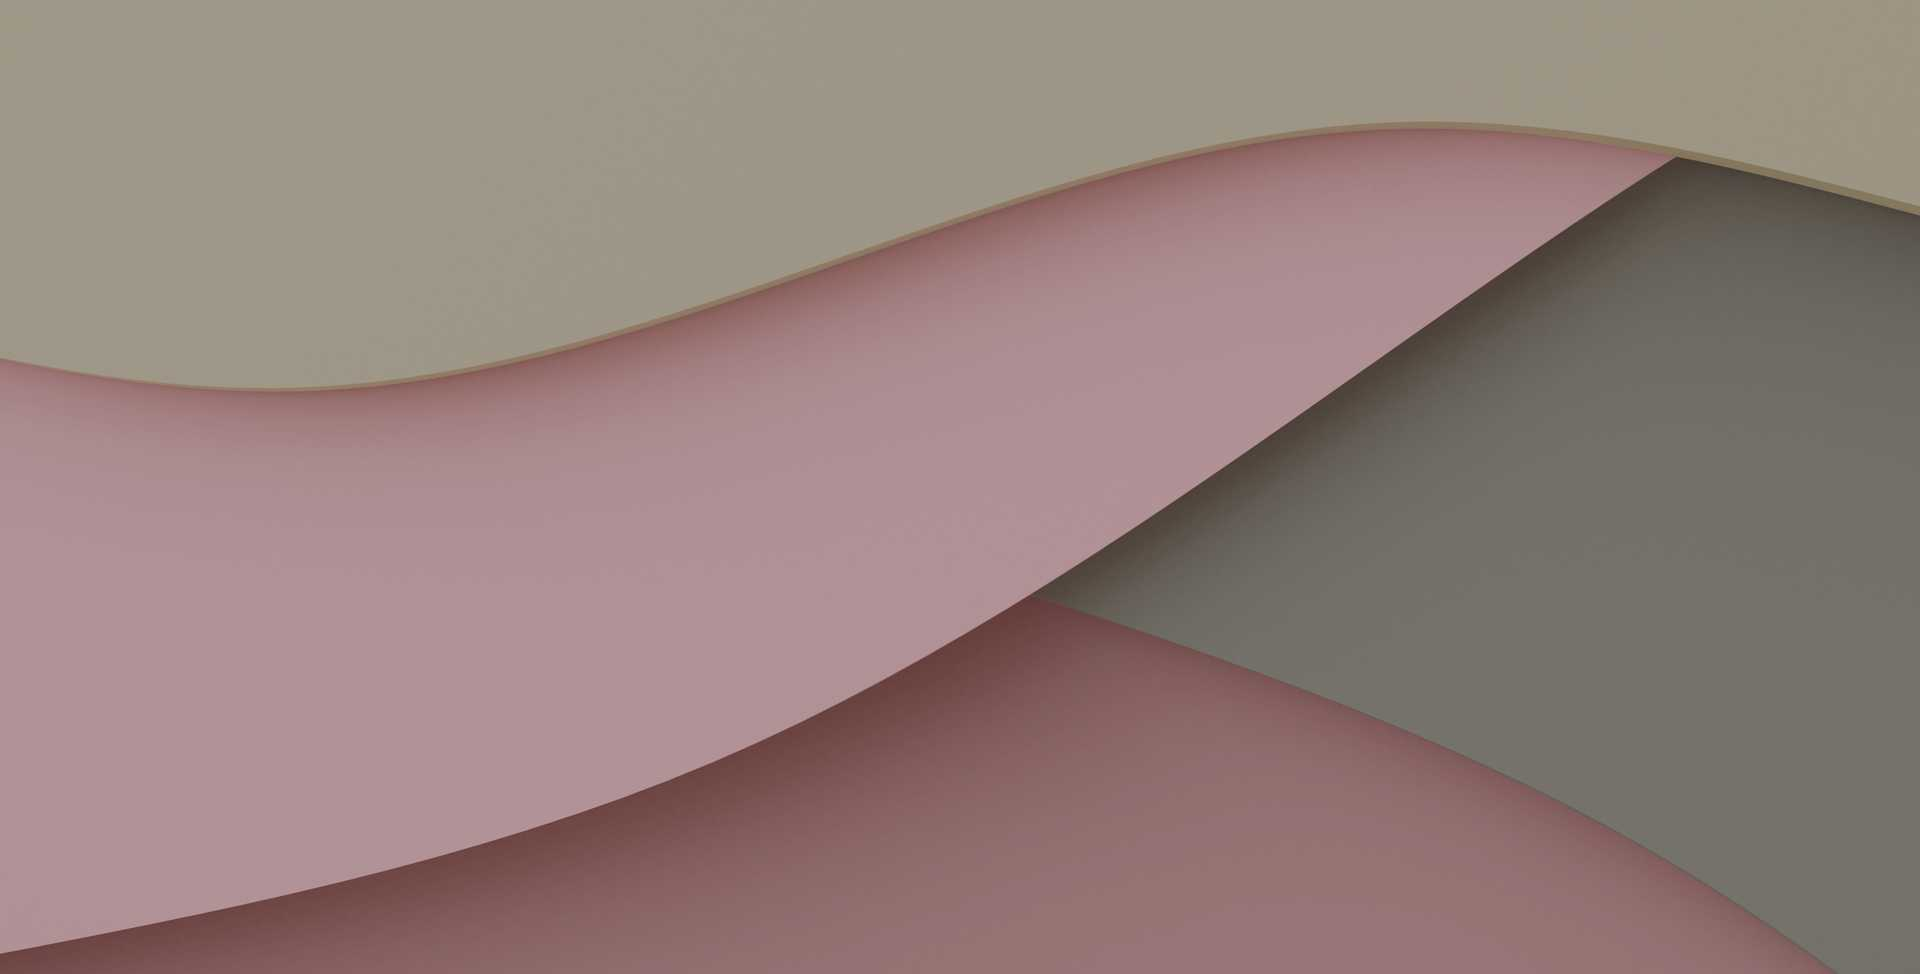 Abstract rendering of overlapping pink, green and beige waves resembling a flow